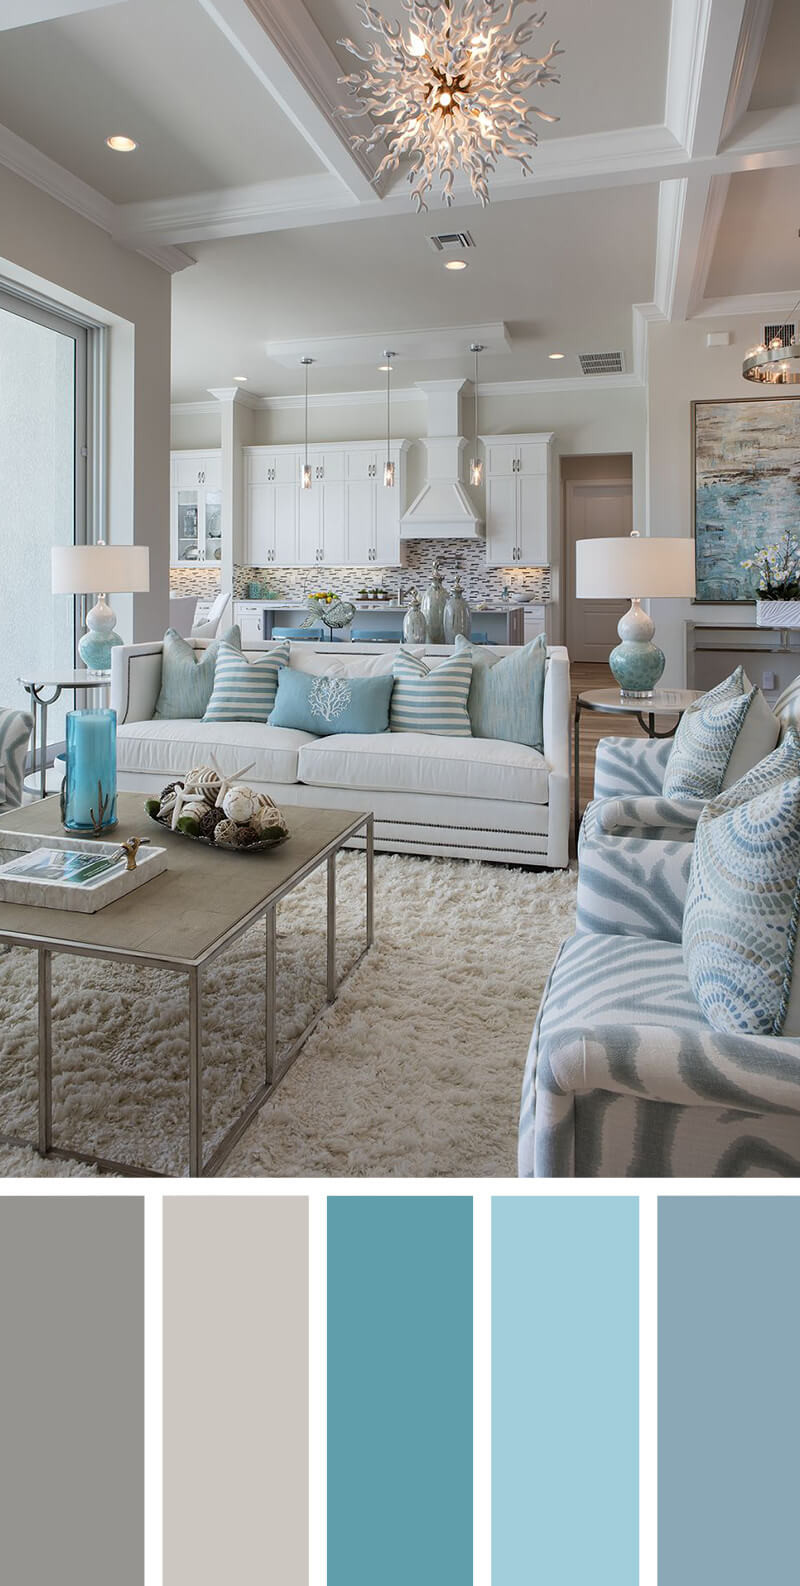 Best ideas about Paint Colors For Family Room . Save or Pin 21 Cozy Living Room Paint Colors Ideas for 2019 Now.